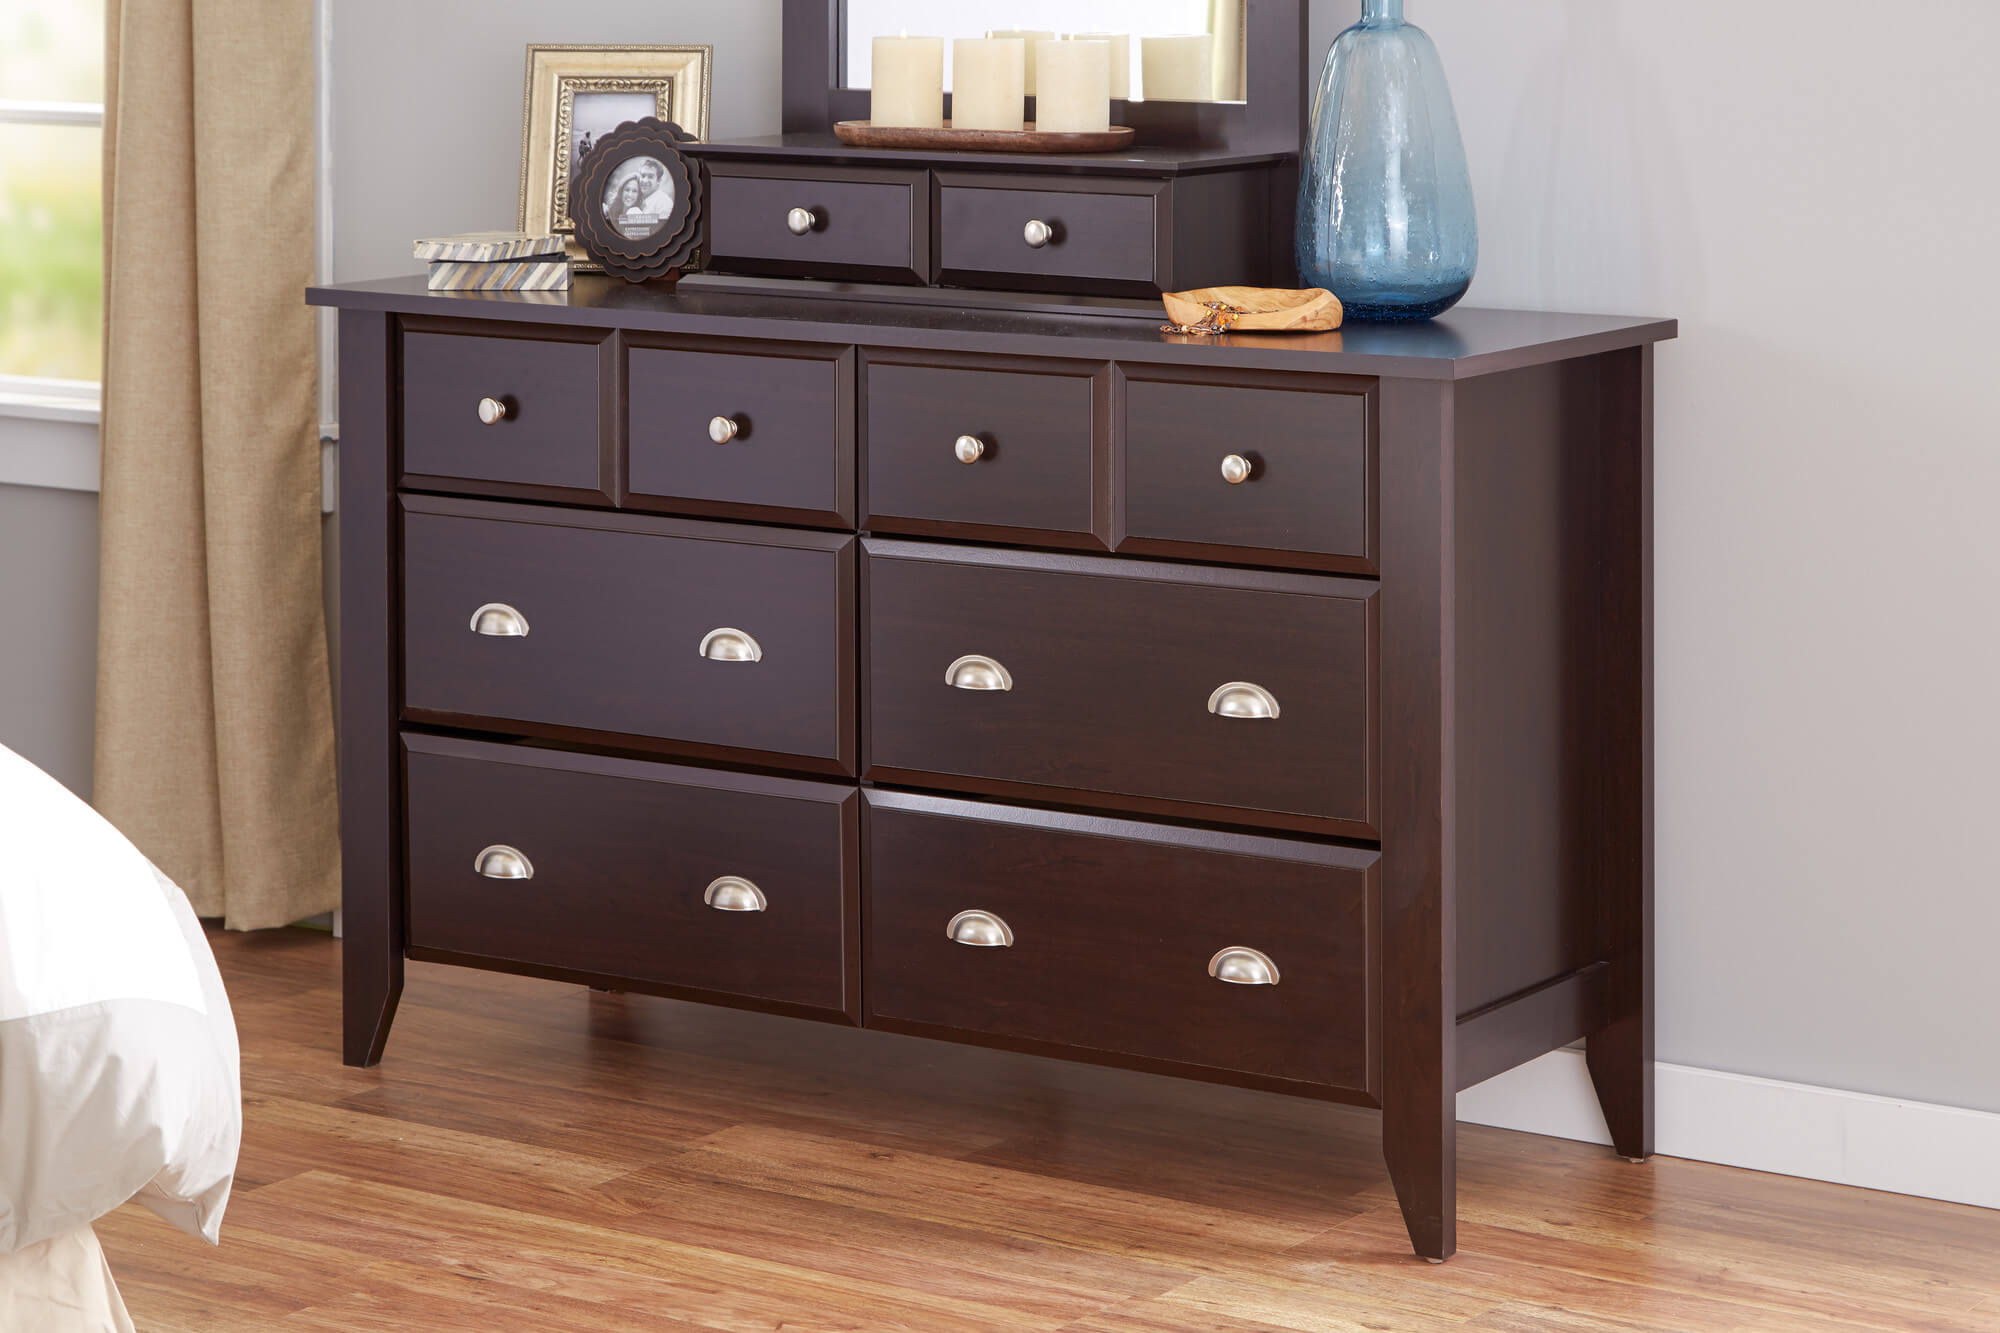 The standard dresser design came from one of the oldest pieces of furniture  invented: the